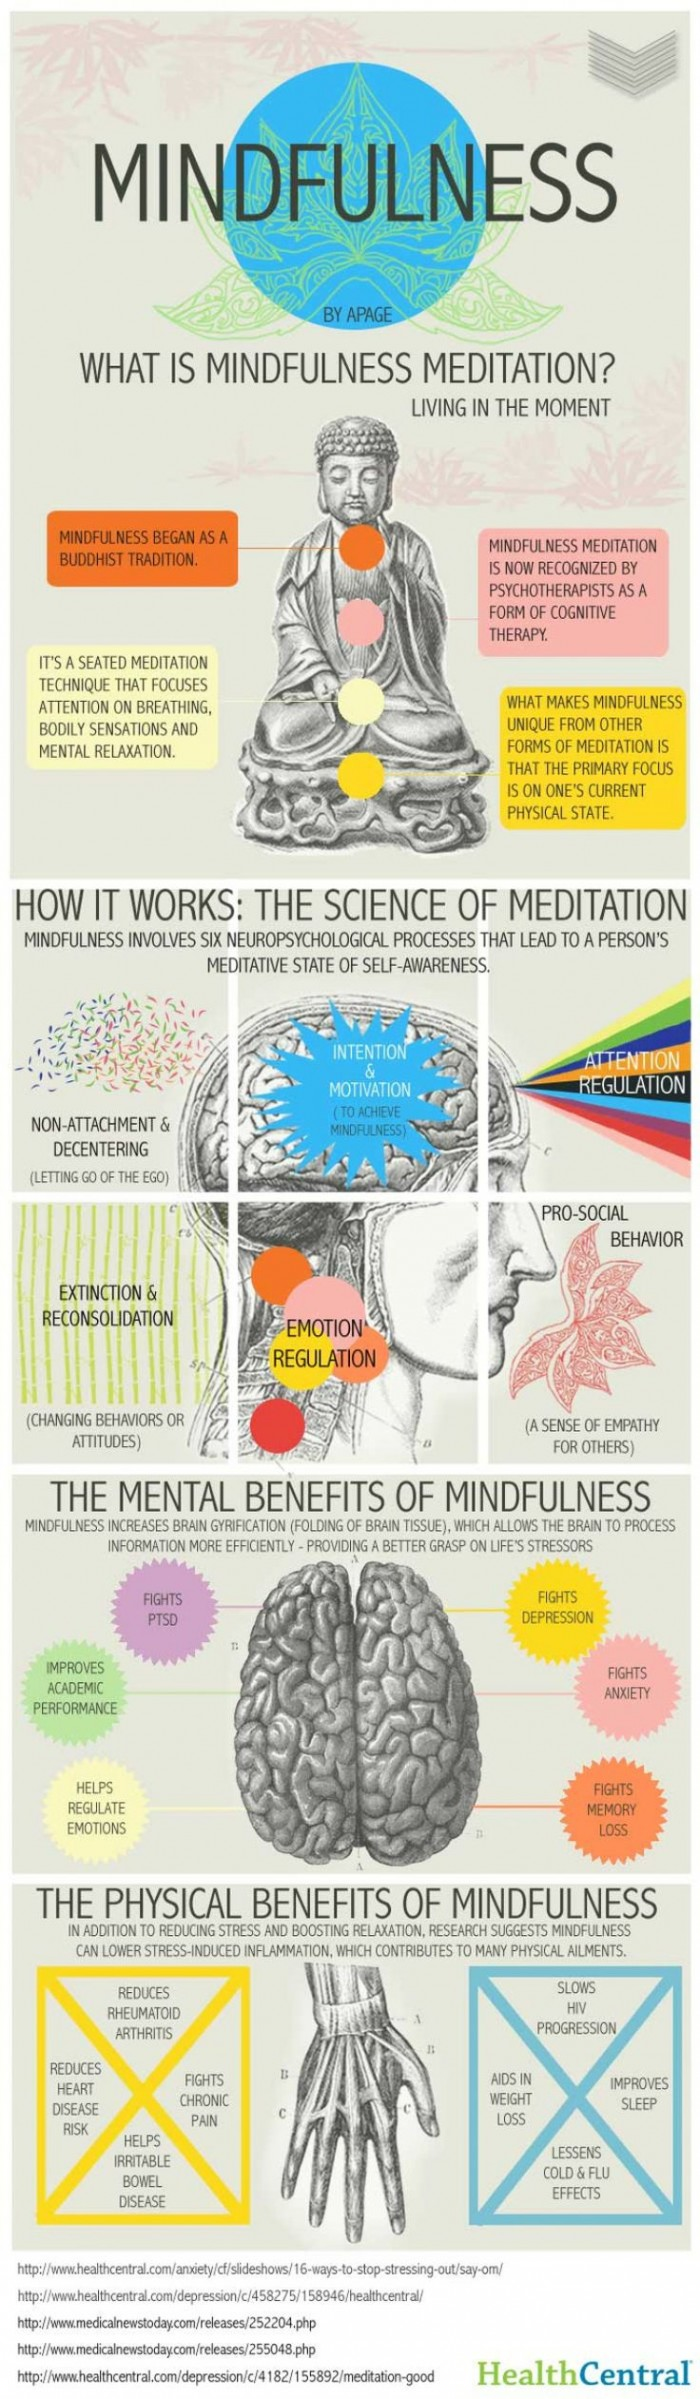 mindfulness benefits infographic